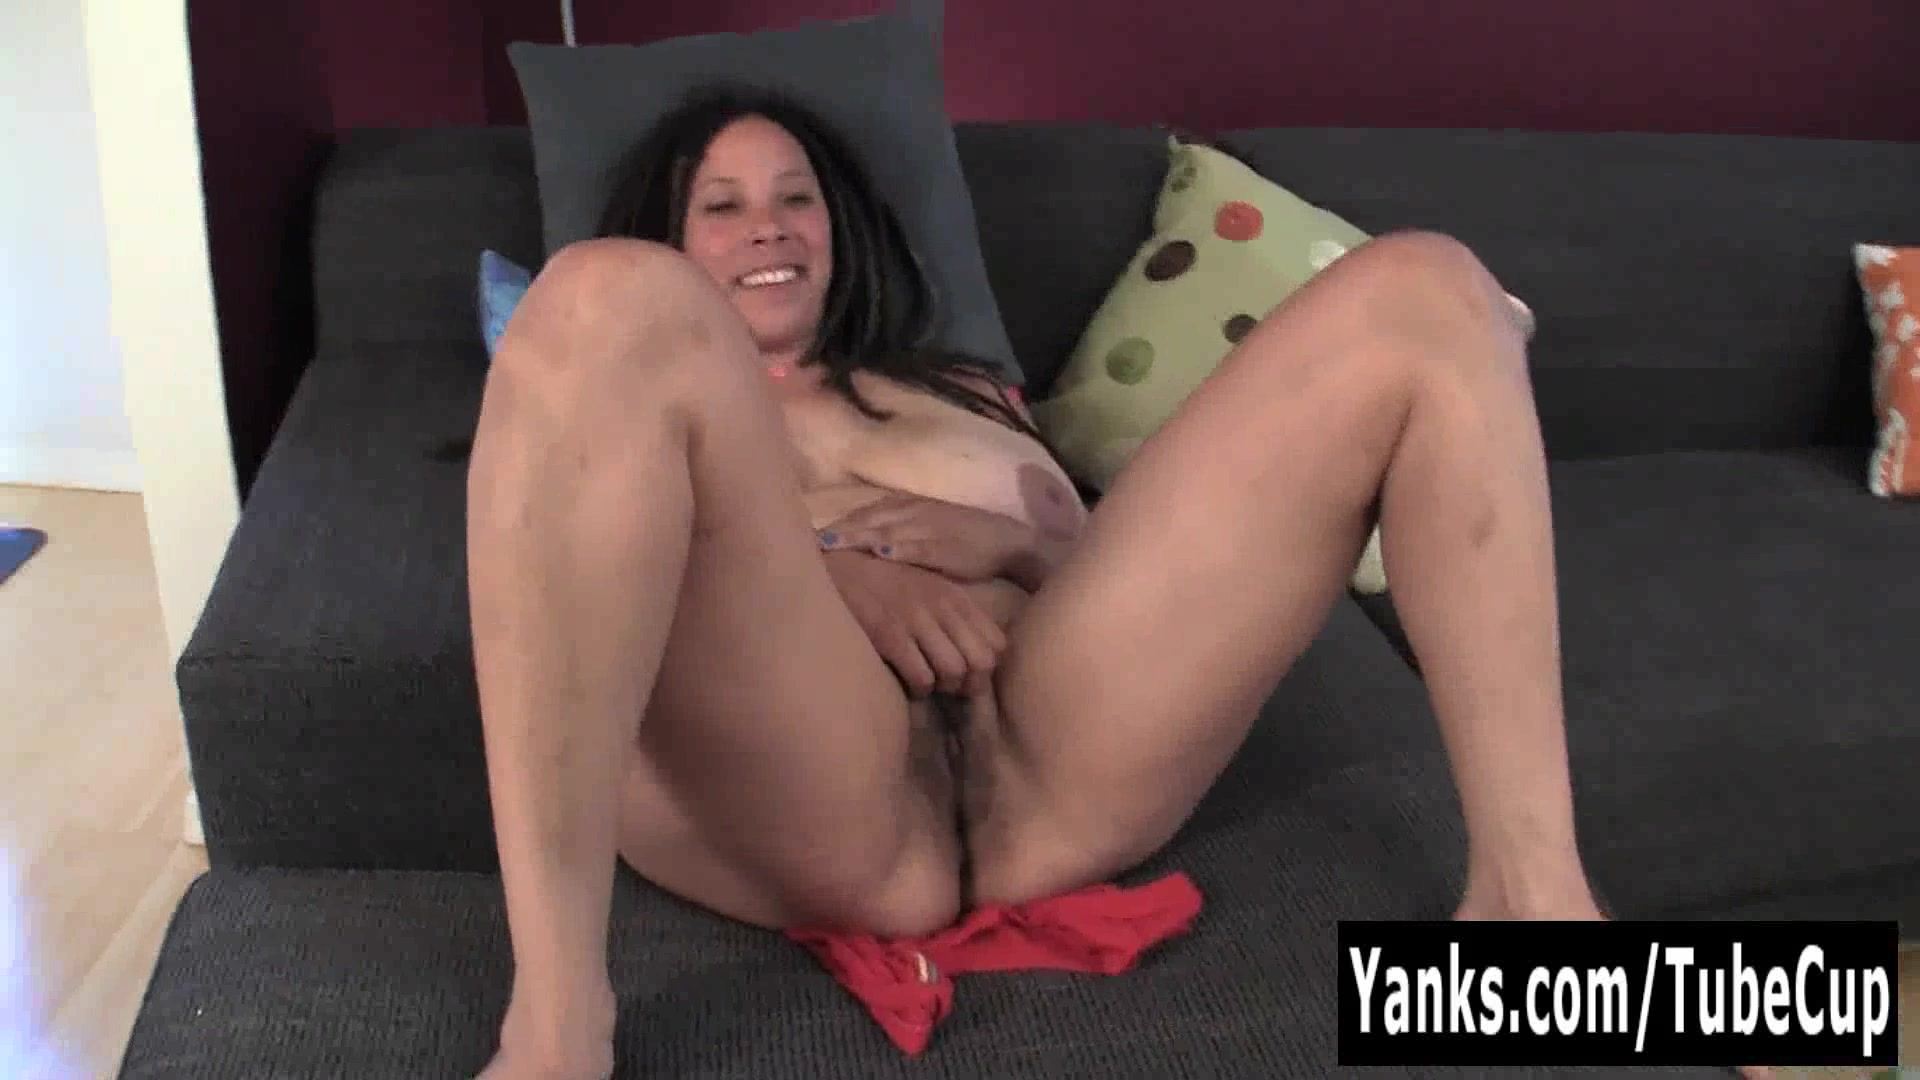 Busty MILF Shannon Rubbing Her Hairy Cunt pussy gripping huge dildo porn videos search watch and download